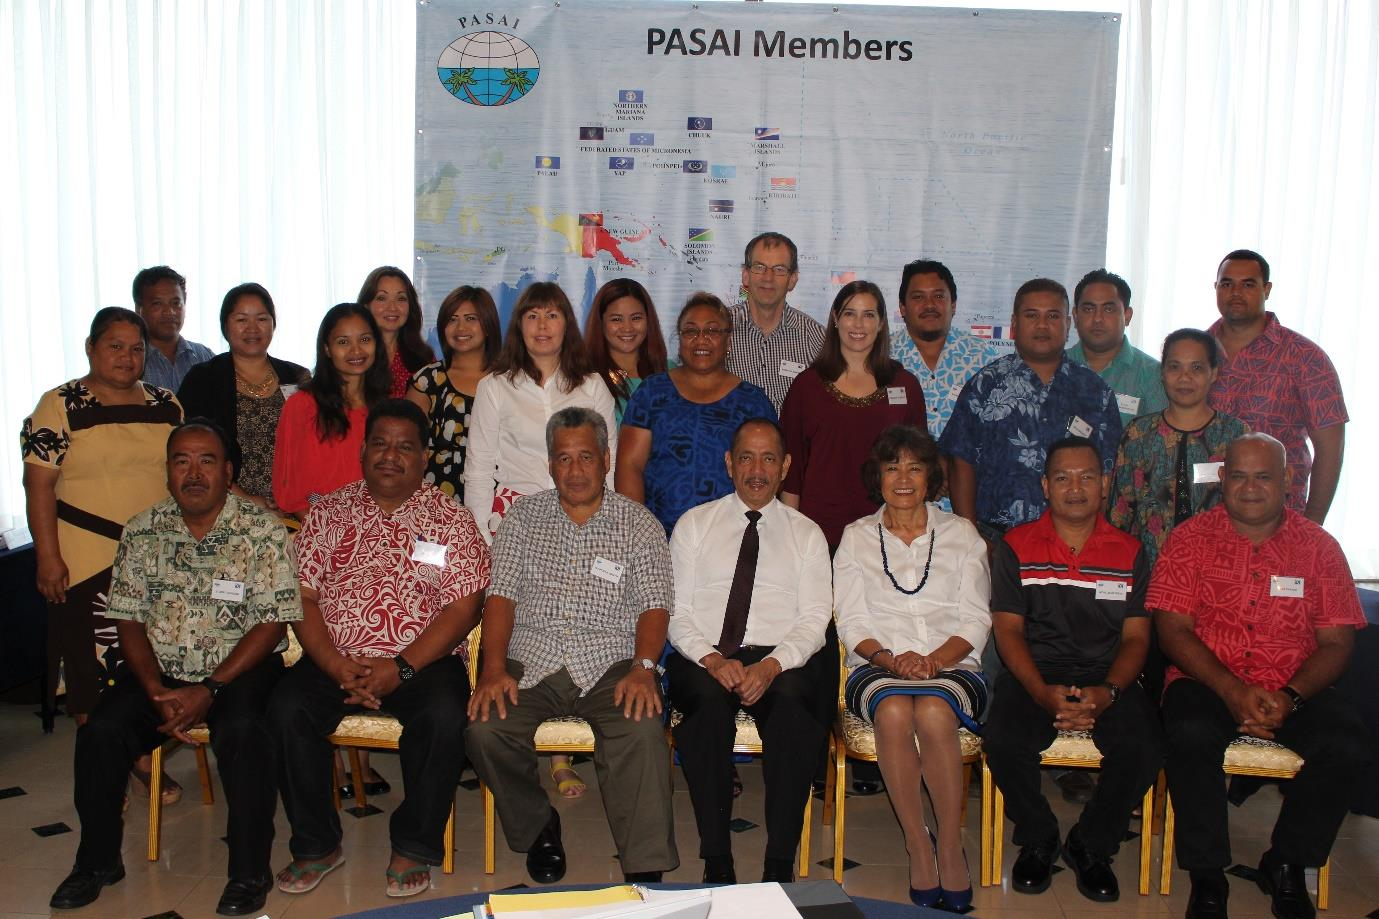 Image of the workshop participants and coordinators